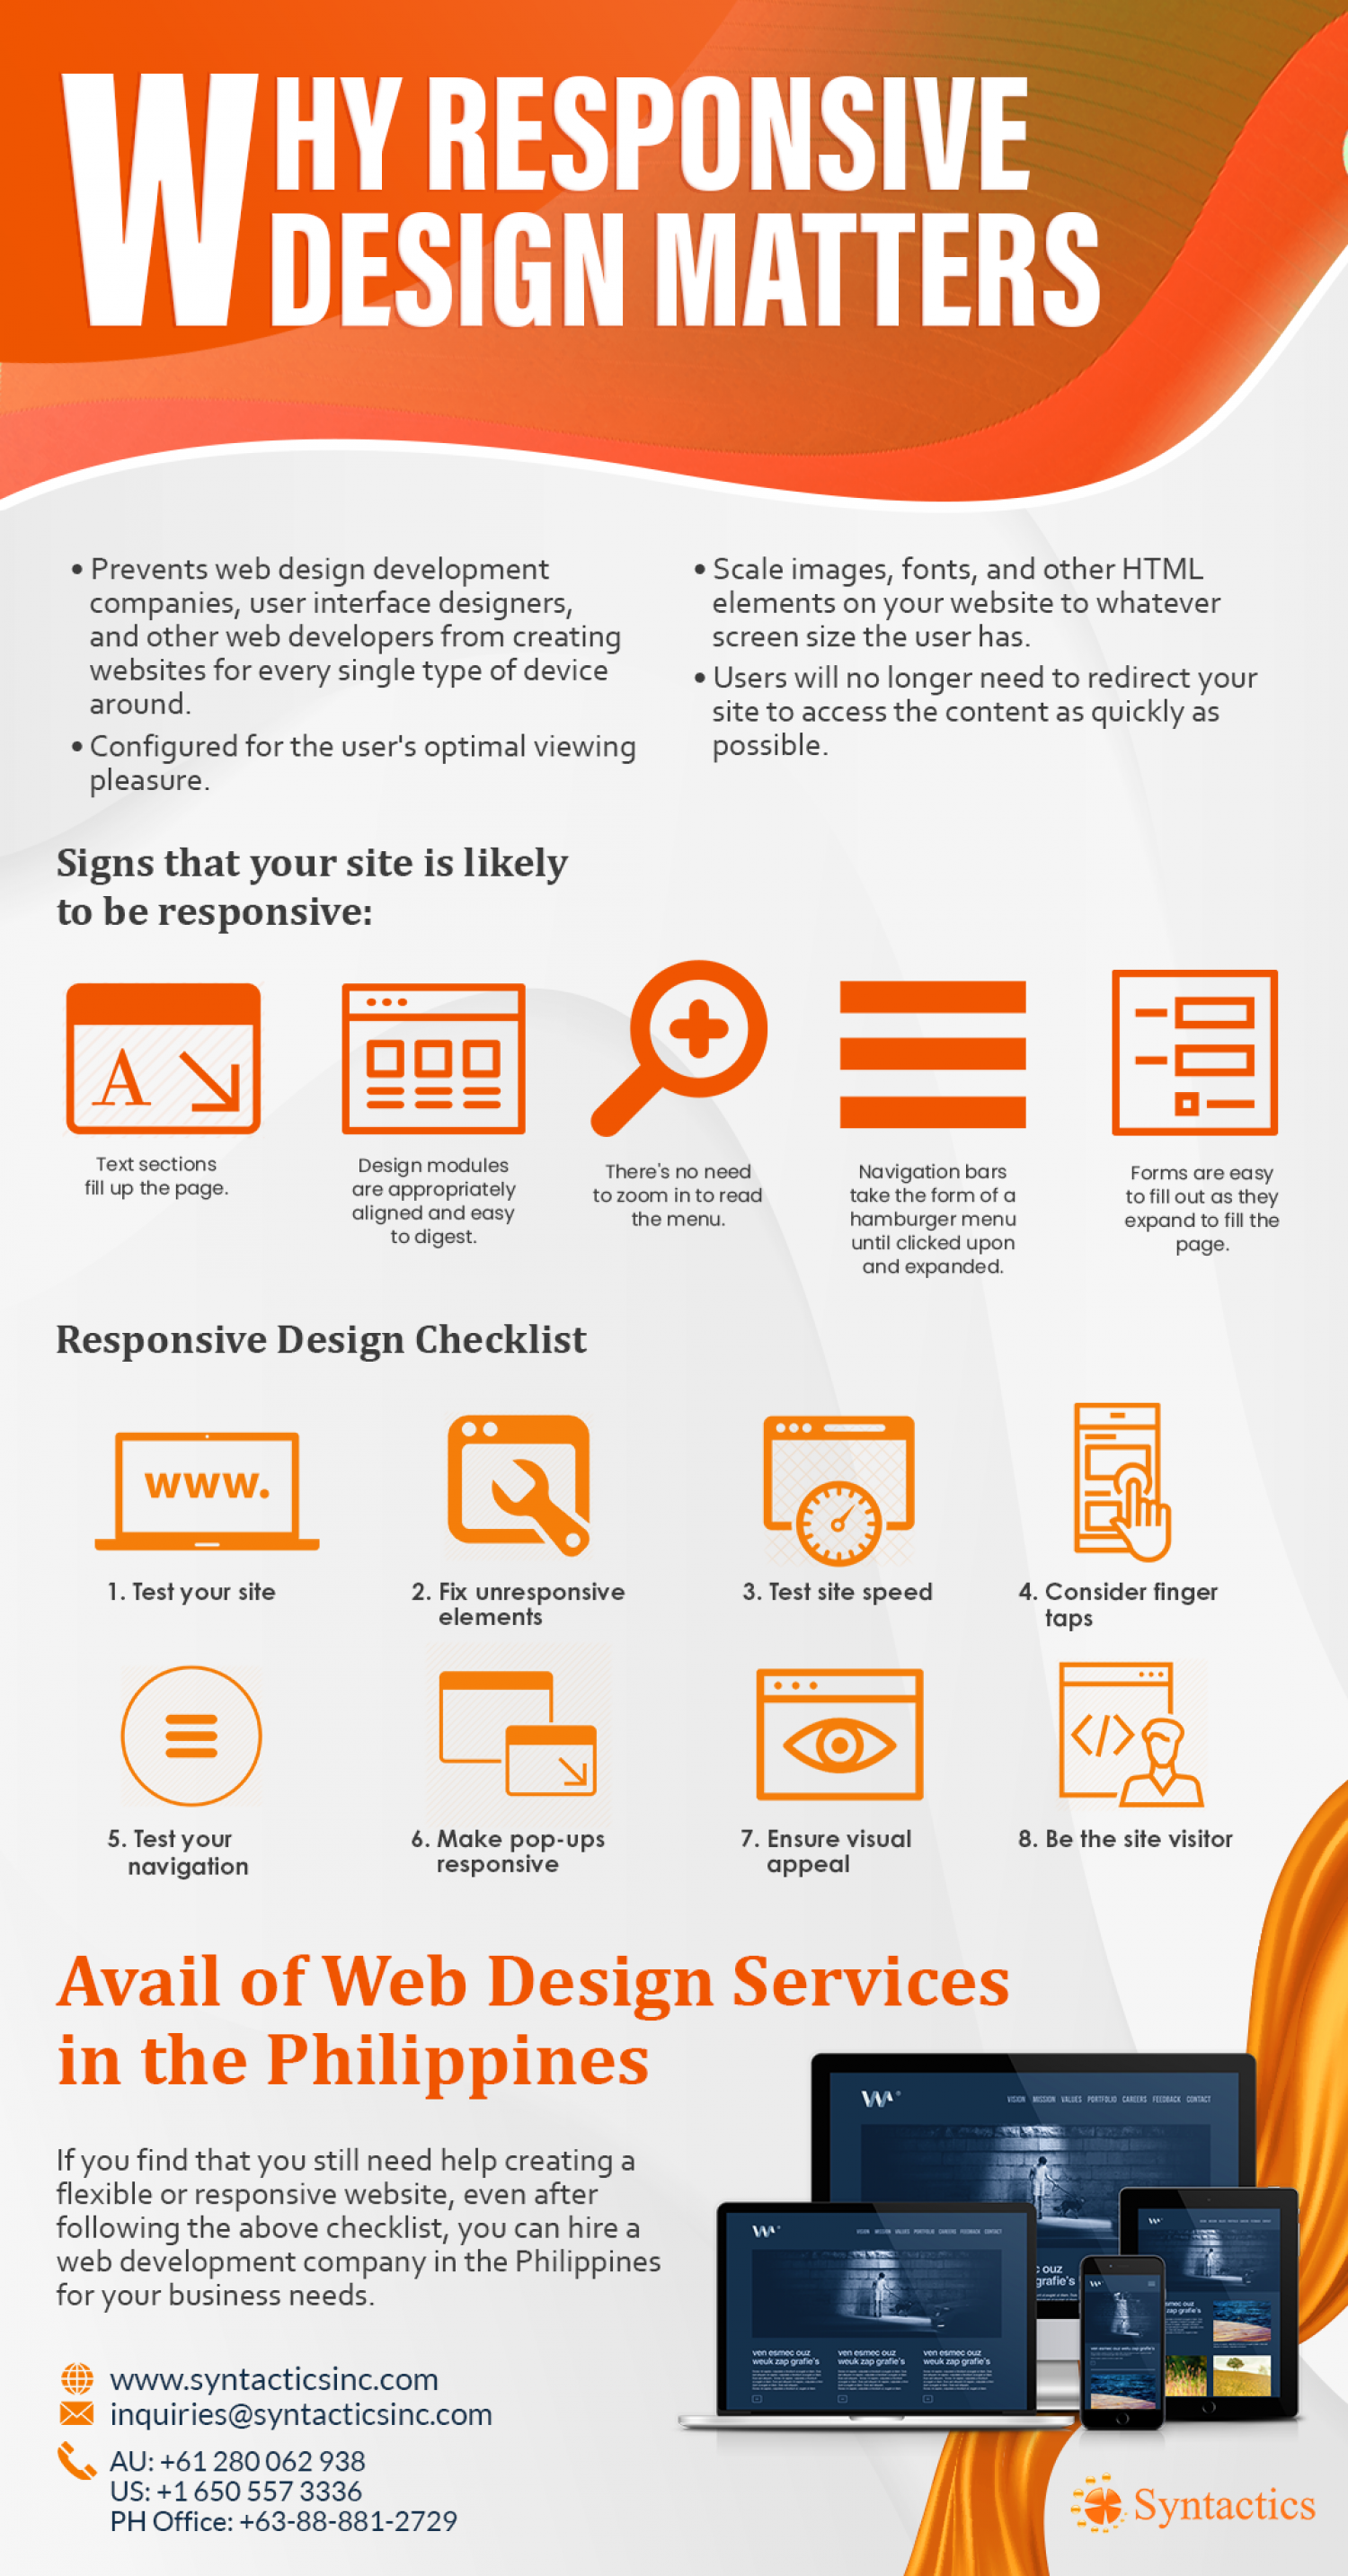 Web Design Development Companies for Flexible Designs Infographic